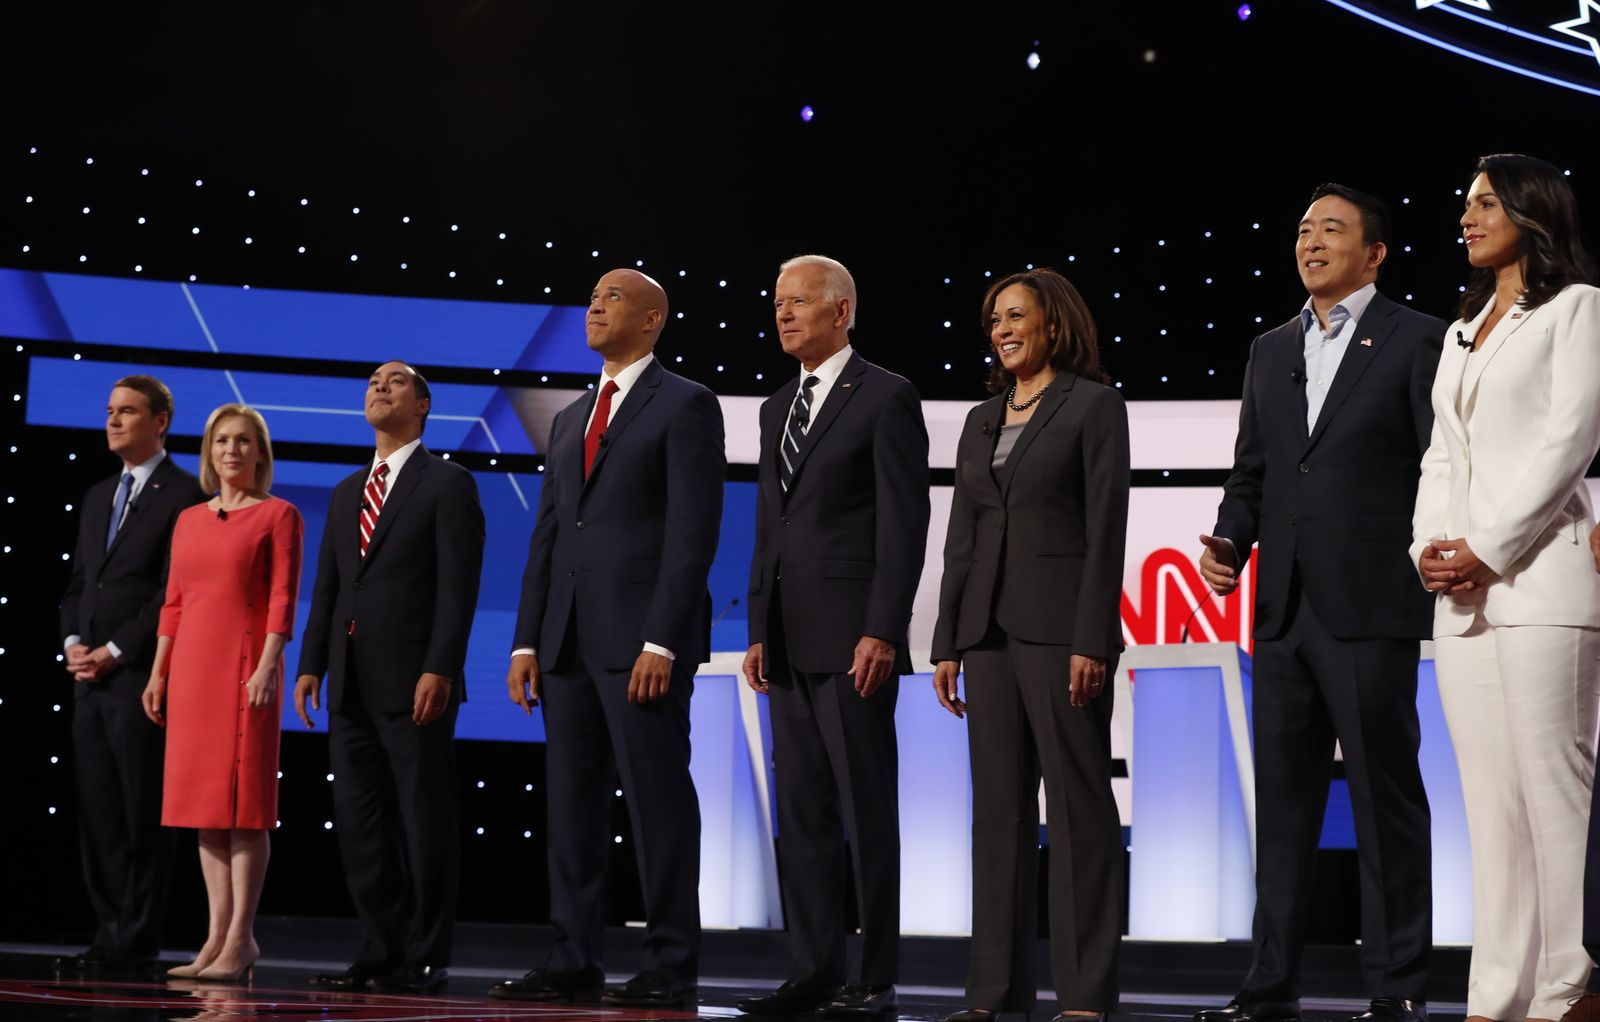 From left, Sen. Michael Bennet, D-Colo., Sen. Kirsten Gillibrand, D-N.Y., former HUD Secretary Julian Castro, Sen. Cory Booker, D-N.J., former Vice President Joe Biden, Sen. Kamala Harris, D-Calif., Andrew Yang and Rep. Tulsi Gabbard, D-Hawaii, are introduced before the second of two Democratic presidential primary debates hosted by CNN Wednesday, July 31, 2019, in the Fox Theatre in Detroit. (AP Photo/Carlos Osorio)